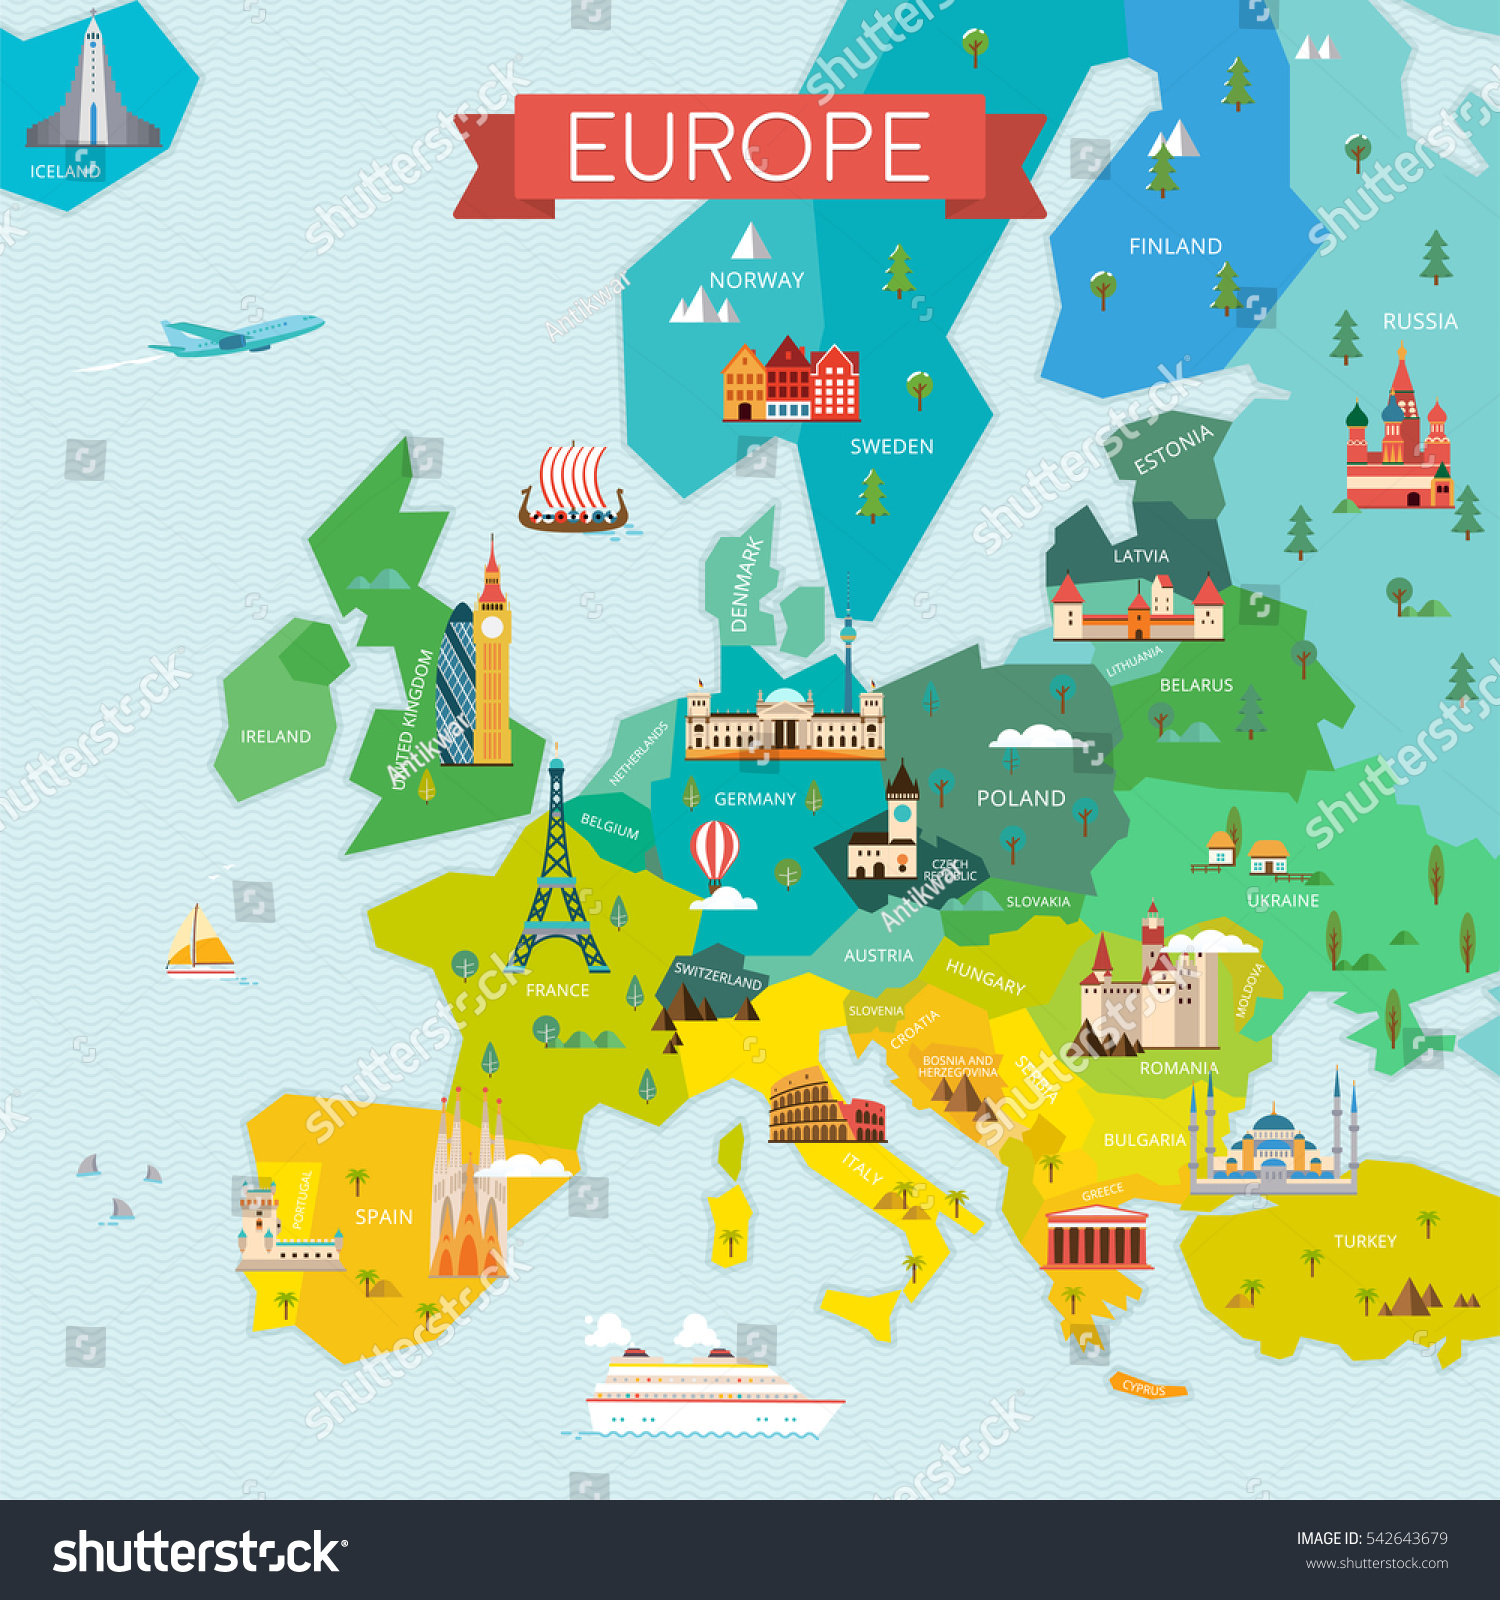 vector illustration of europe - photo #16